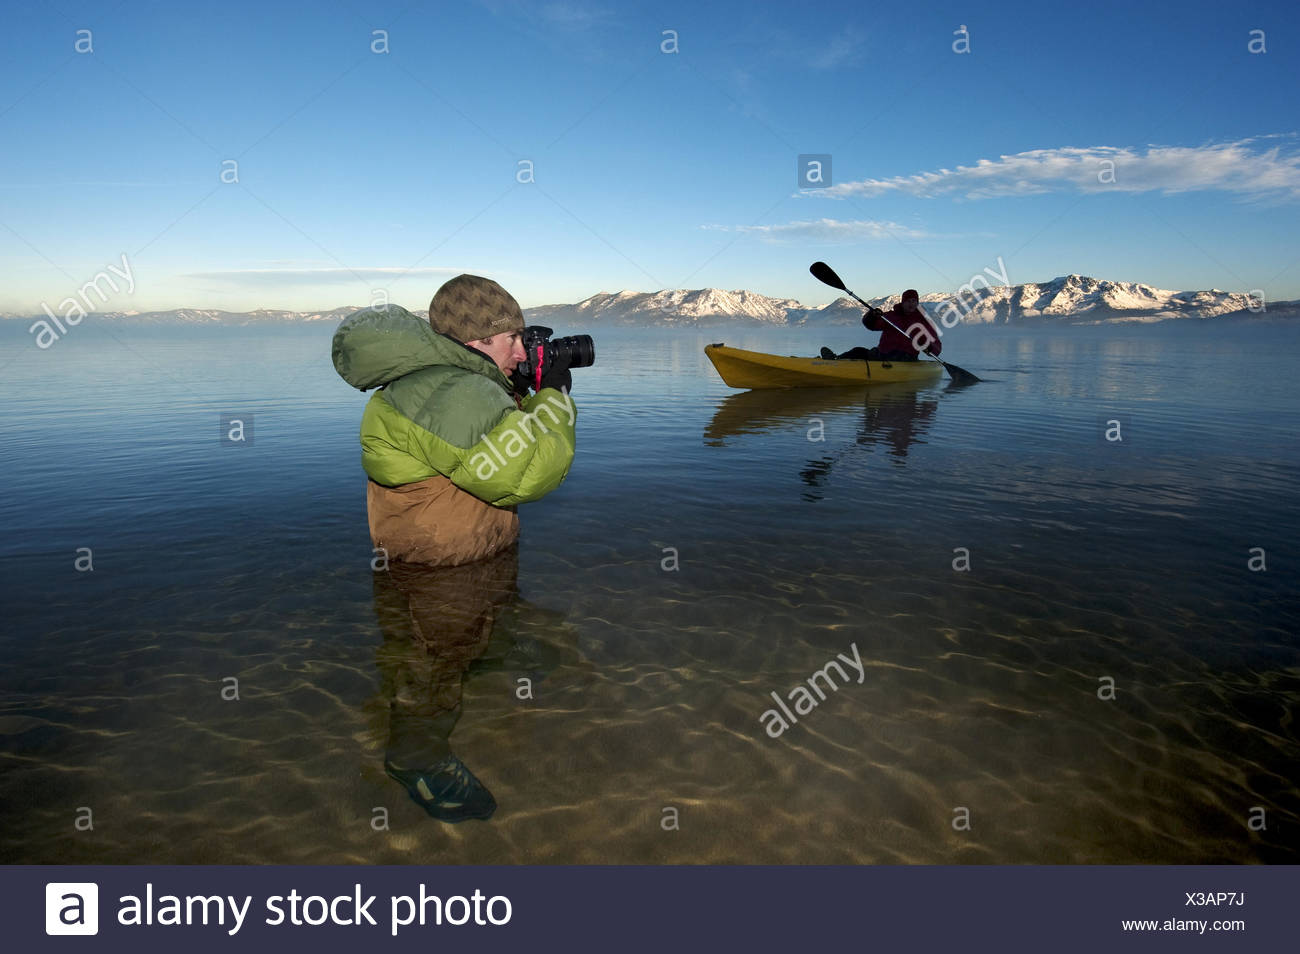 A photographer photographs a kayaker in Lake Tahoe. Stock Photo